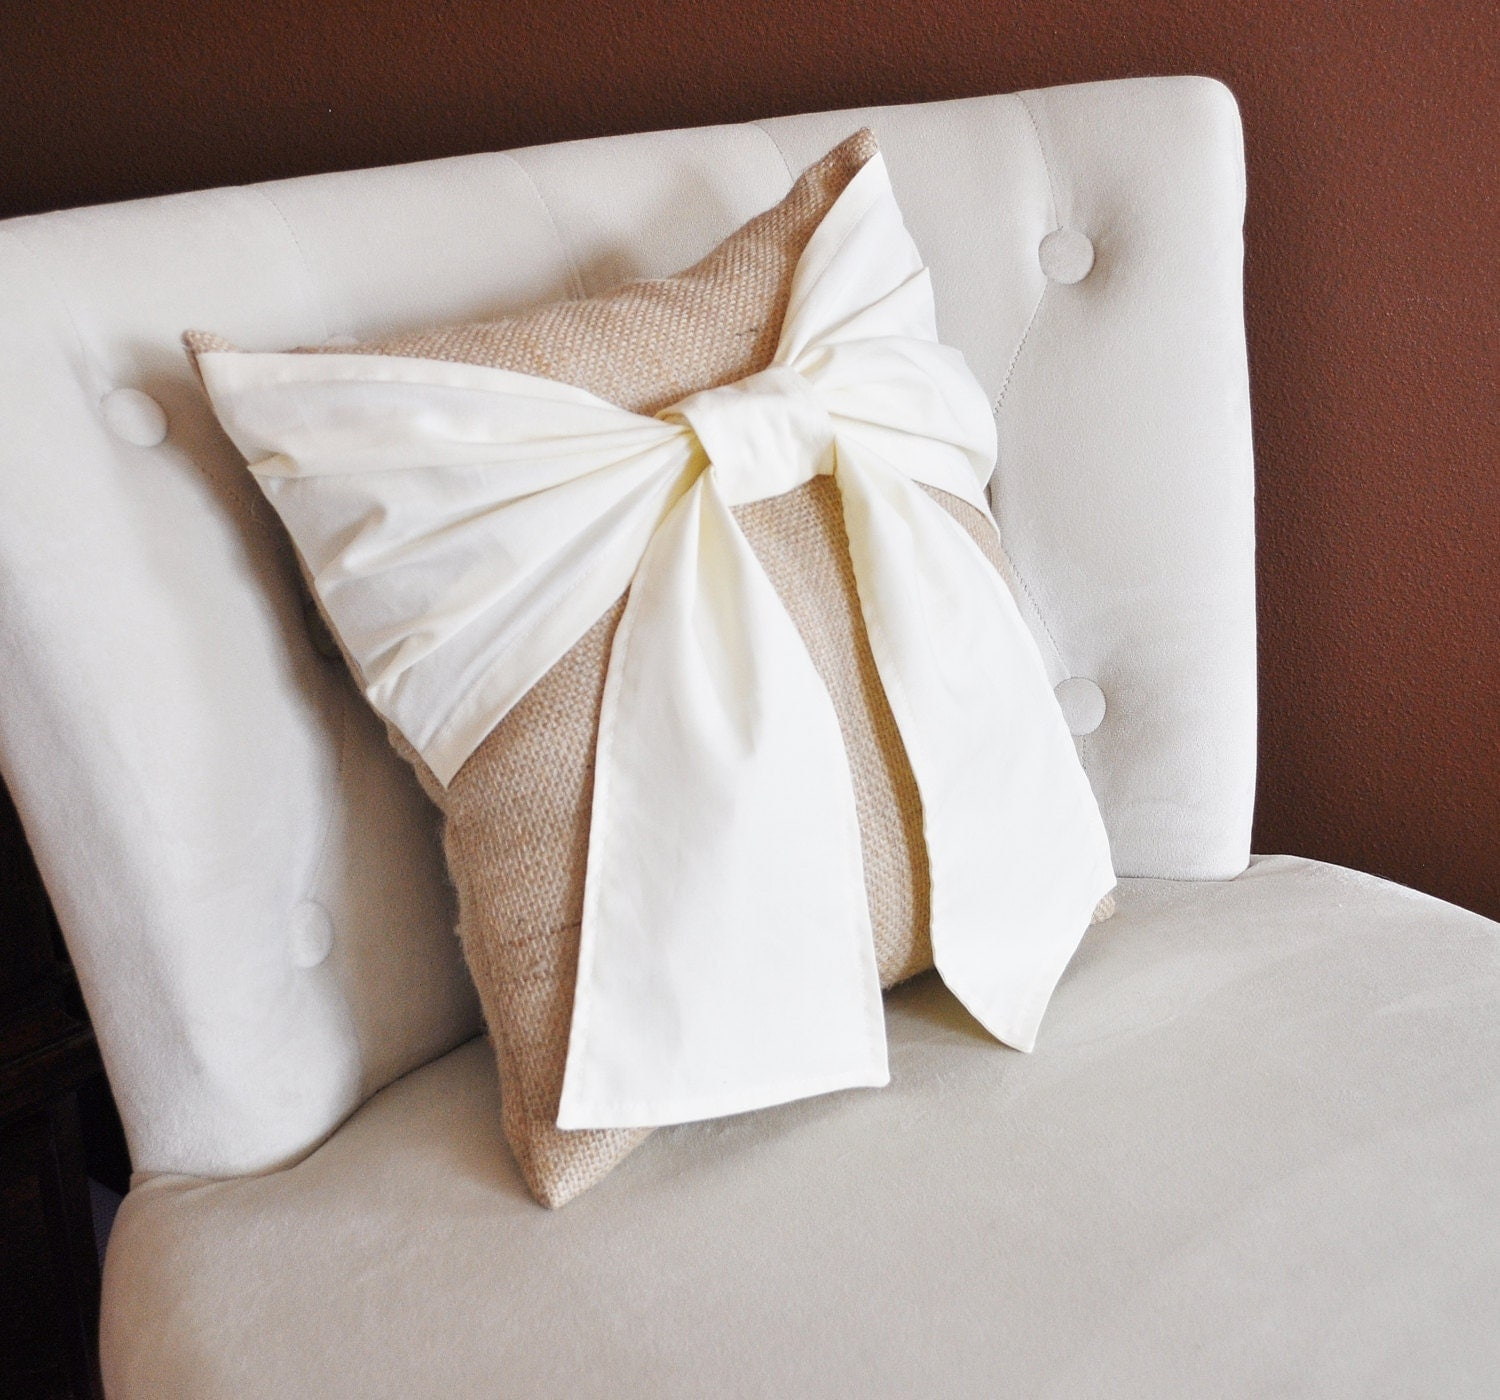 Etsy Throw Pillow Sets : Throw Pillow Cream Bow on Burlap Rustic Pillow 14x14 Rustic